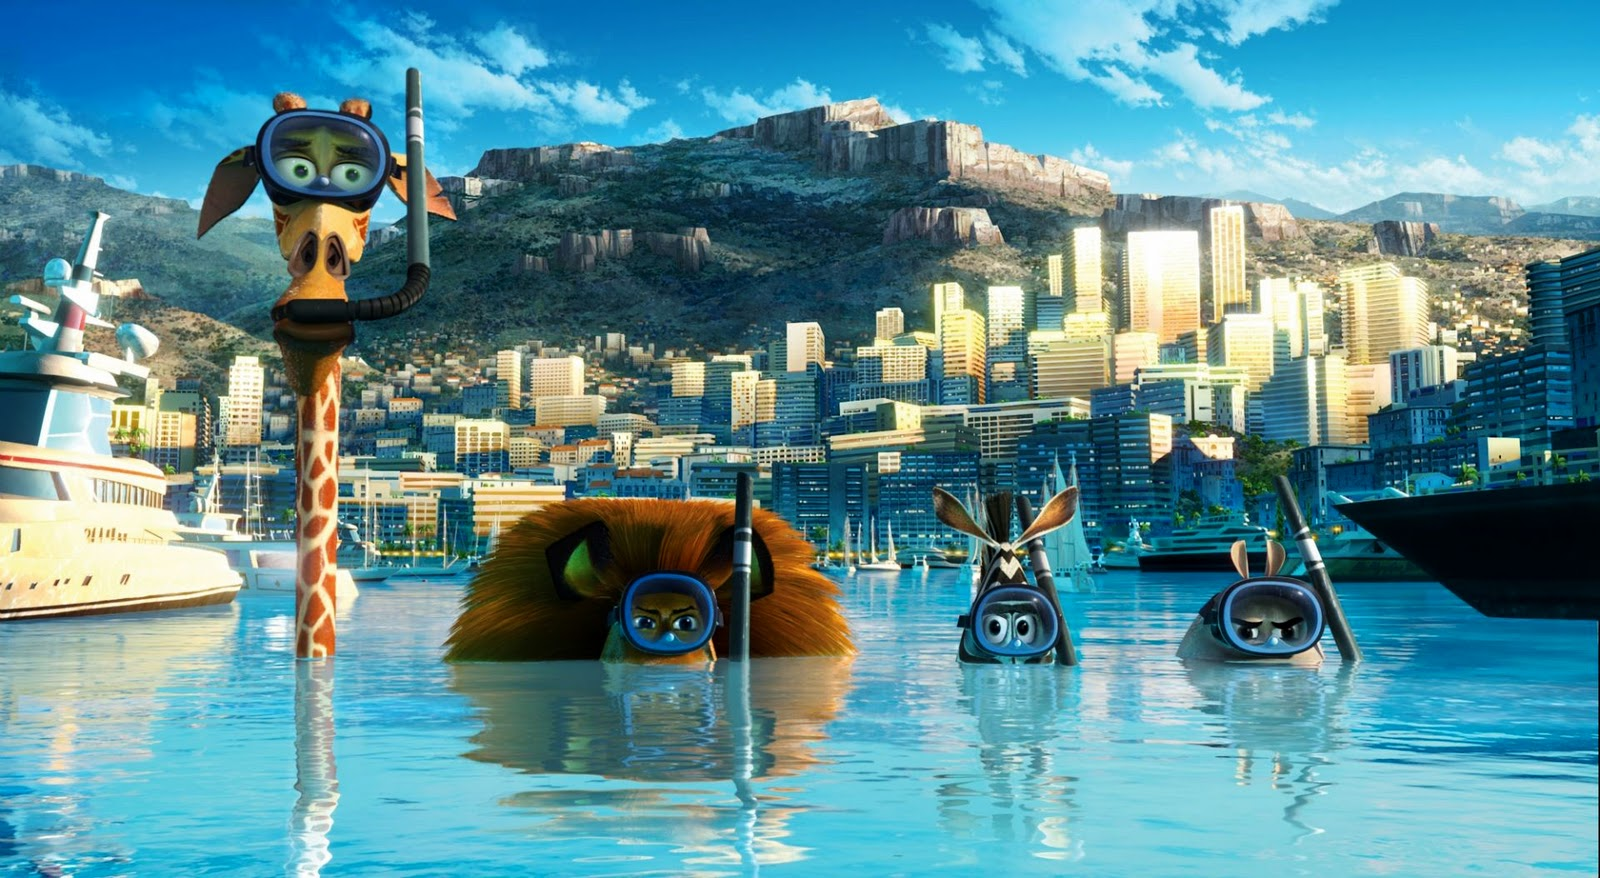 Movie 2012 Poster HD Wallpapers Download Wallpapers in HD 1600x878